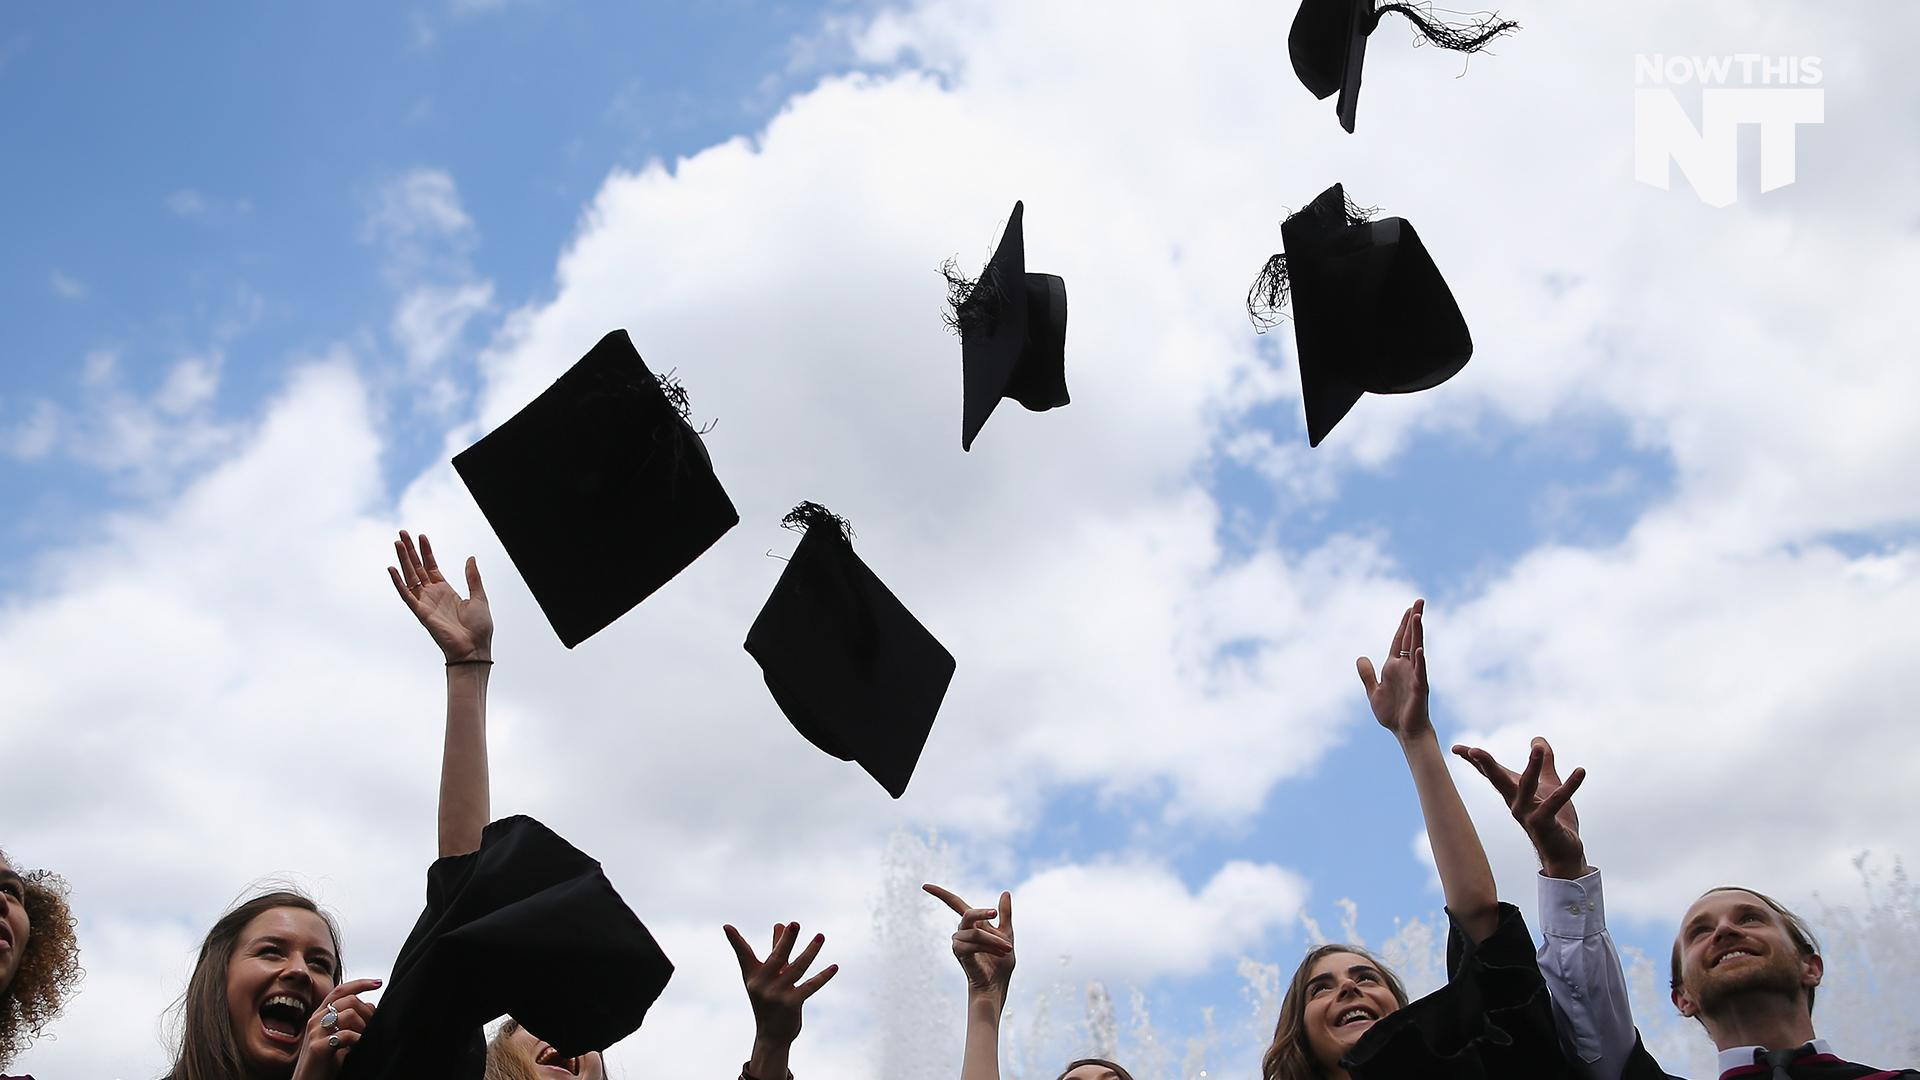 U.S. Cities Offering Student Loan Repayment Programs